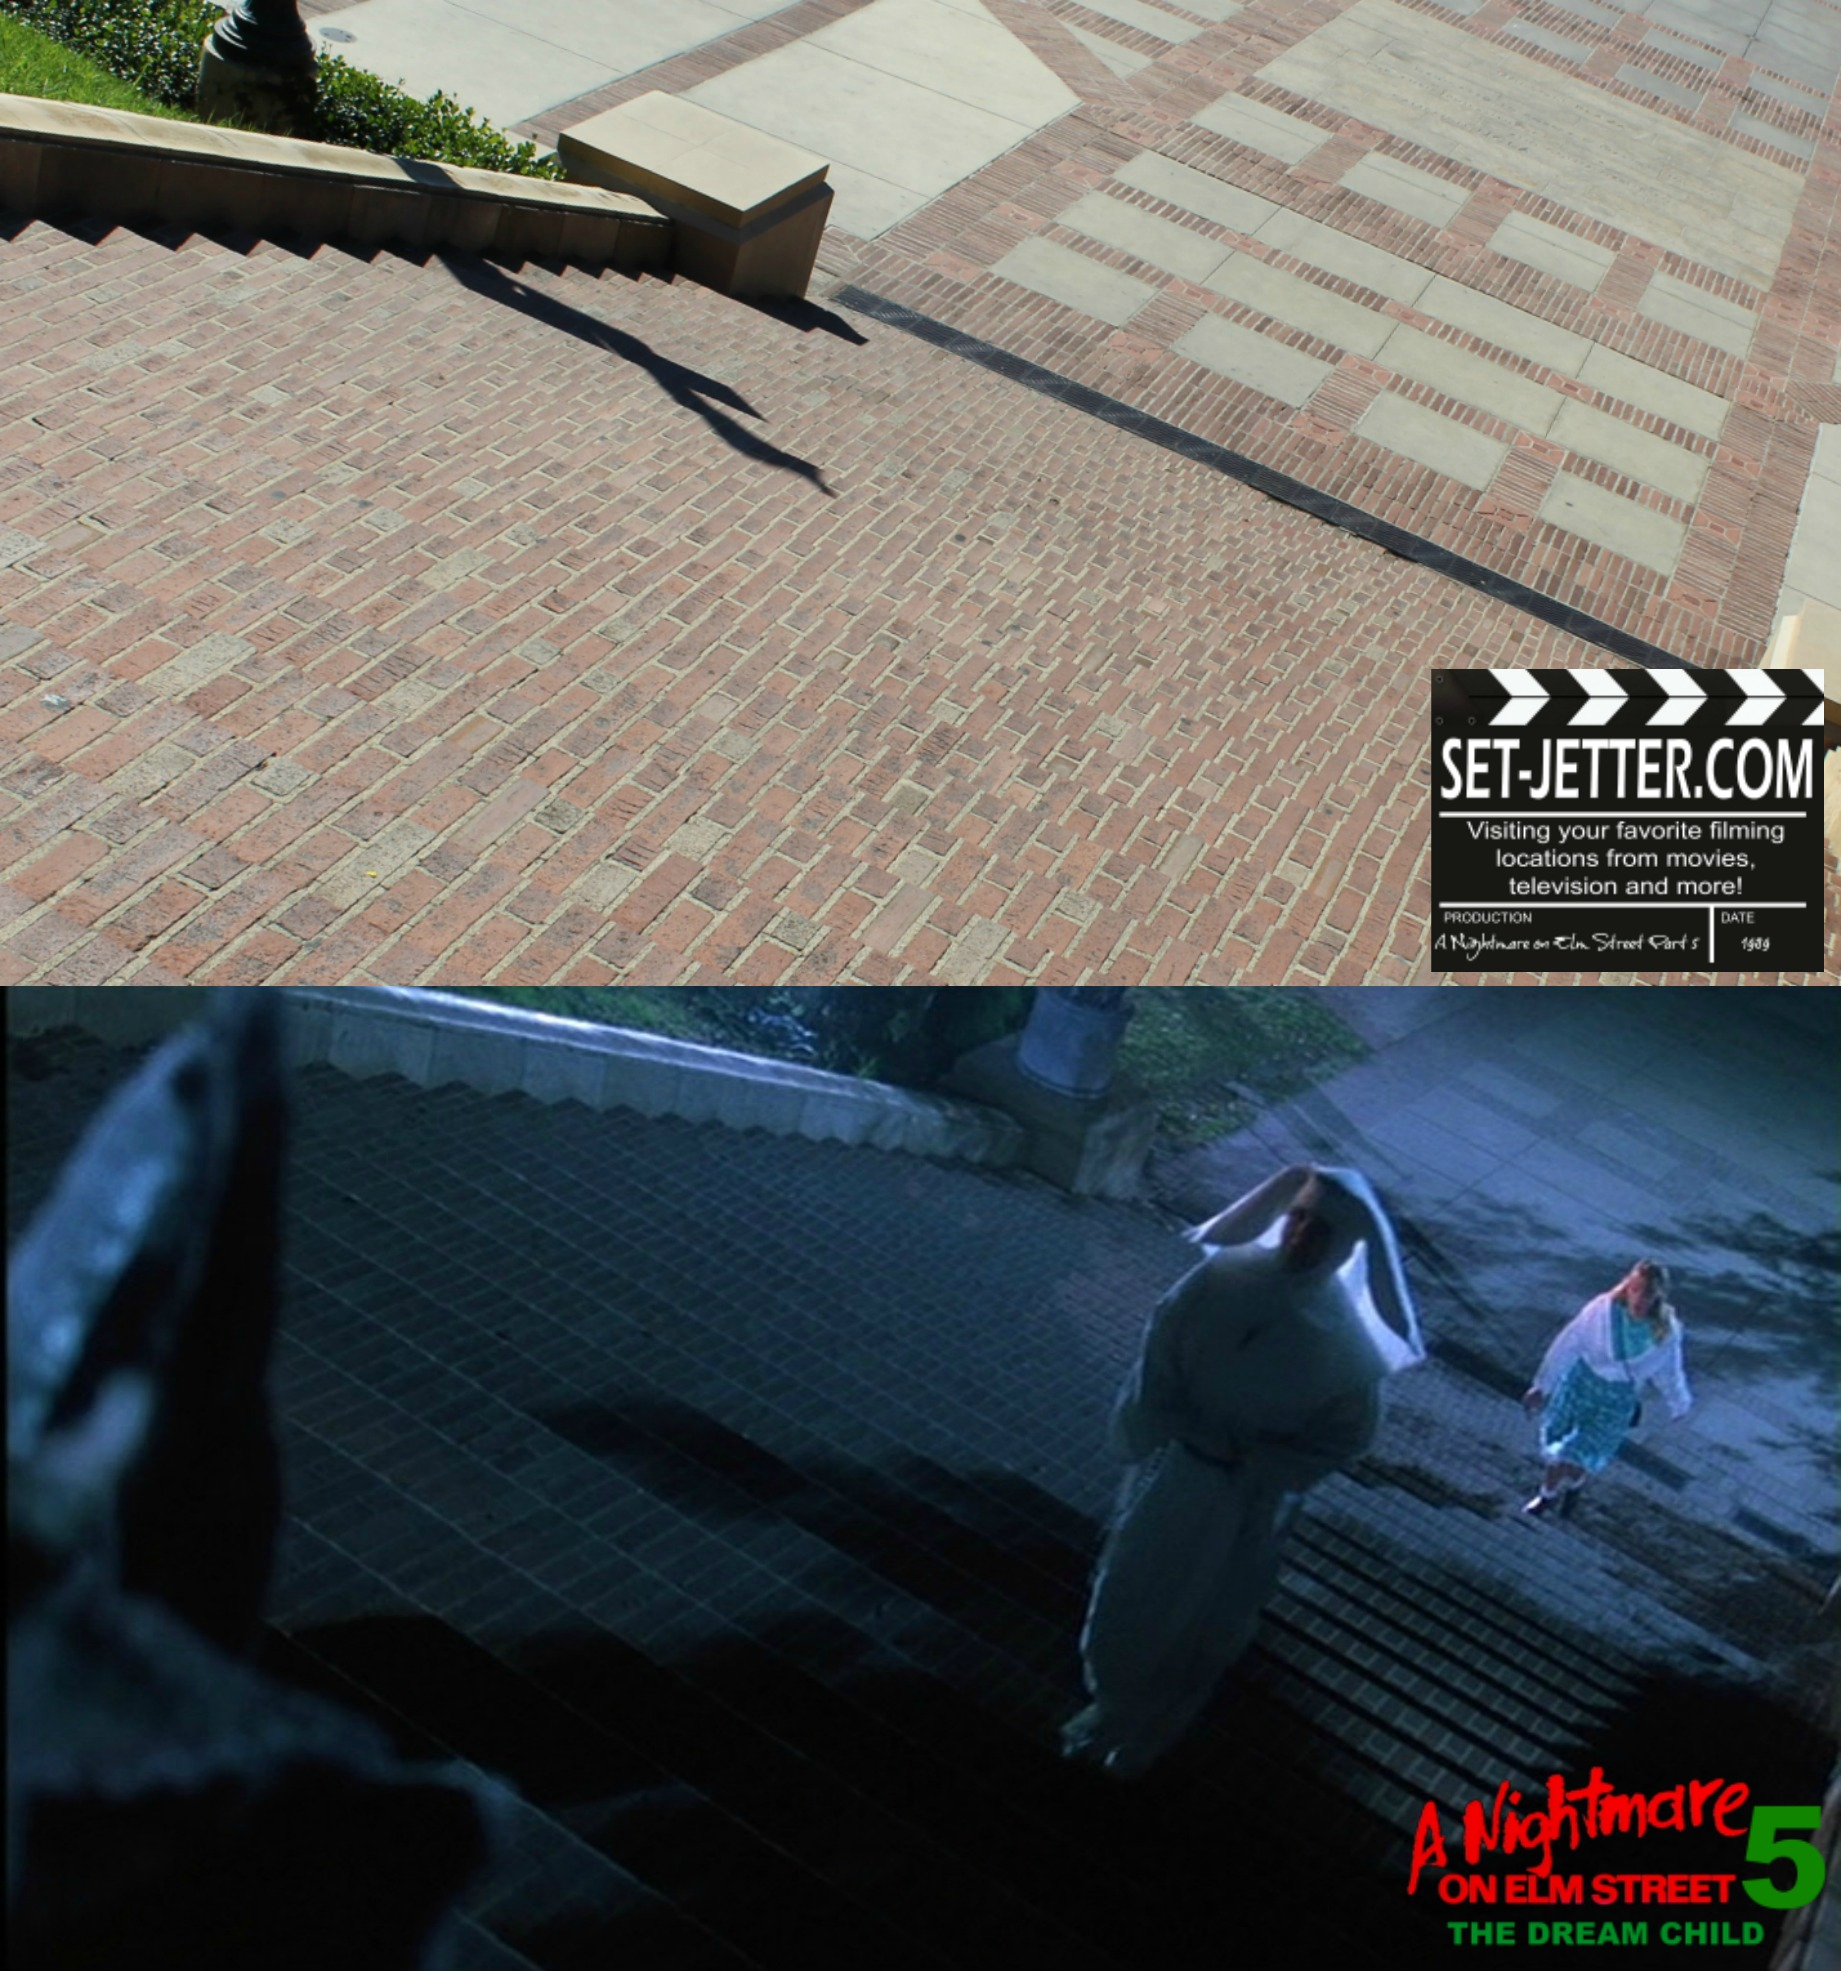 Nightmare on Elm Street Part 5 comparison 30l.jpg